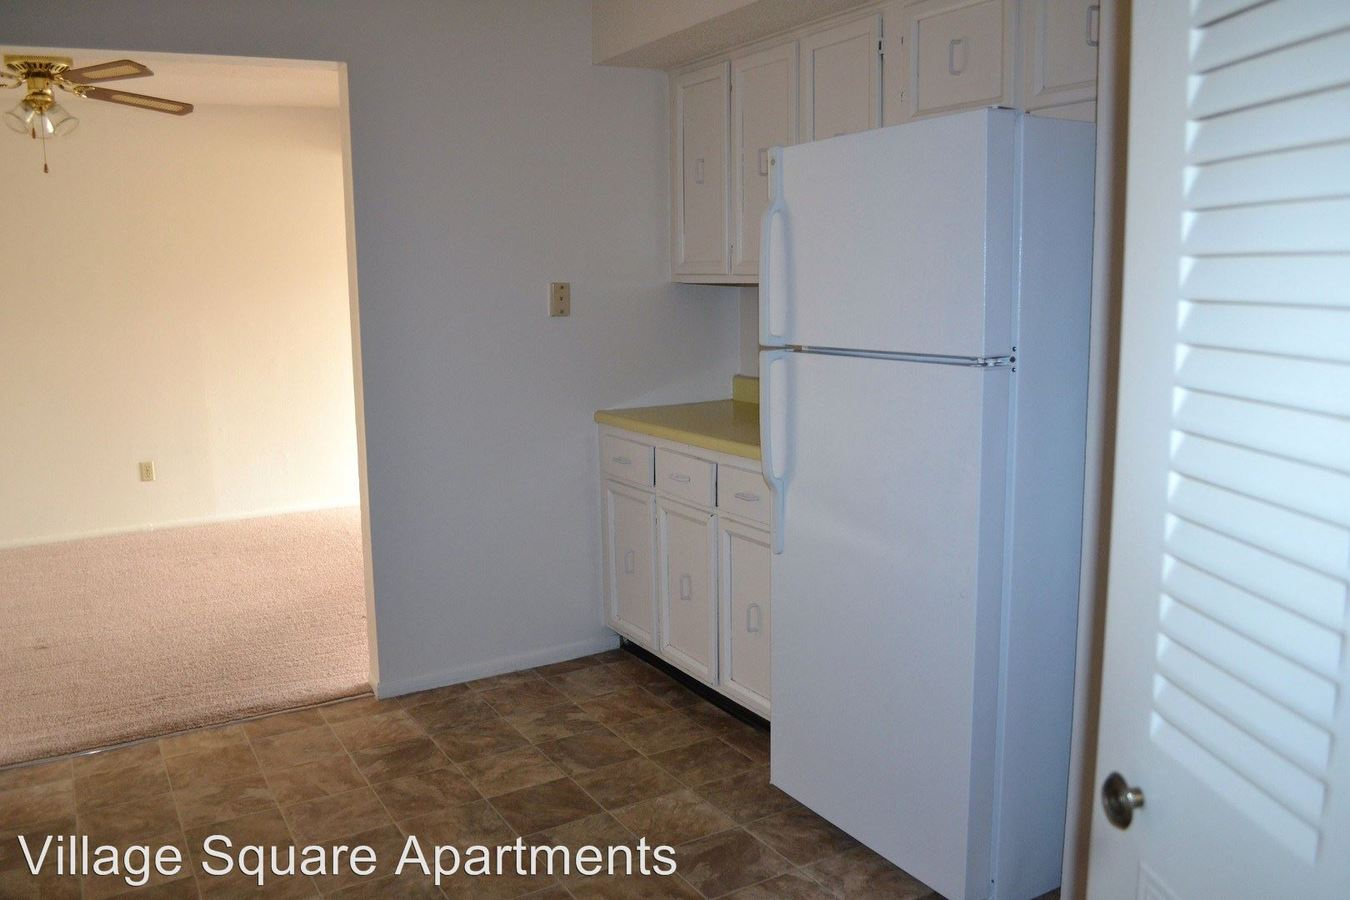 3 Bedrooms 2 Bathrooms Apartment for rent at Village Square Apartments in Lafayette, IN